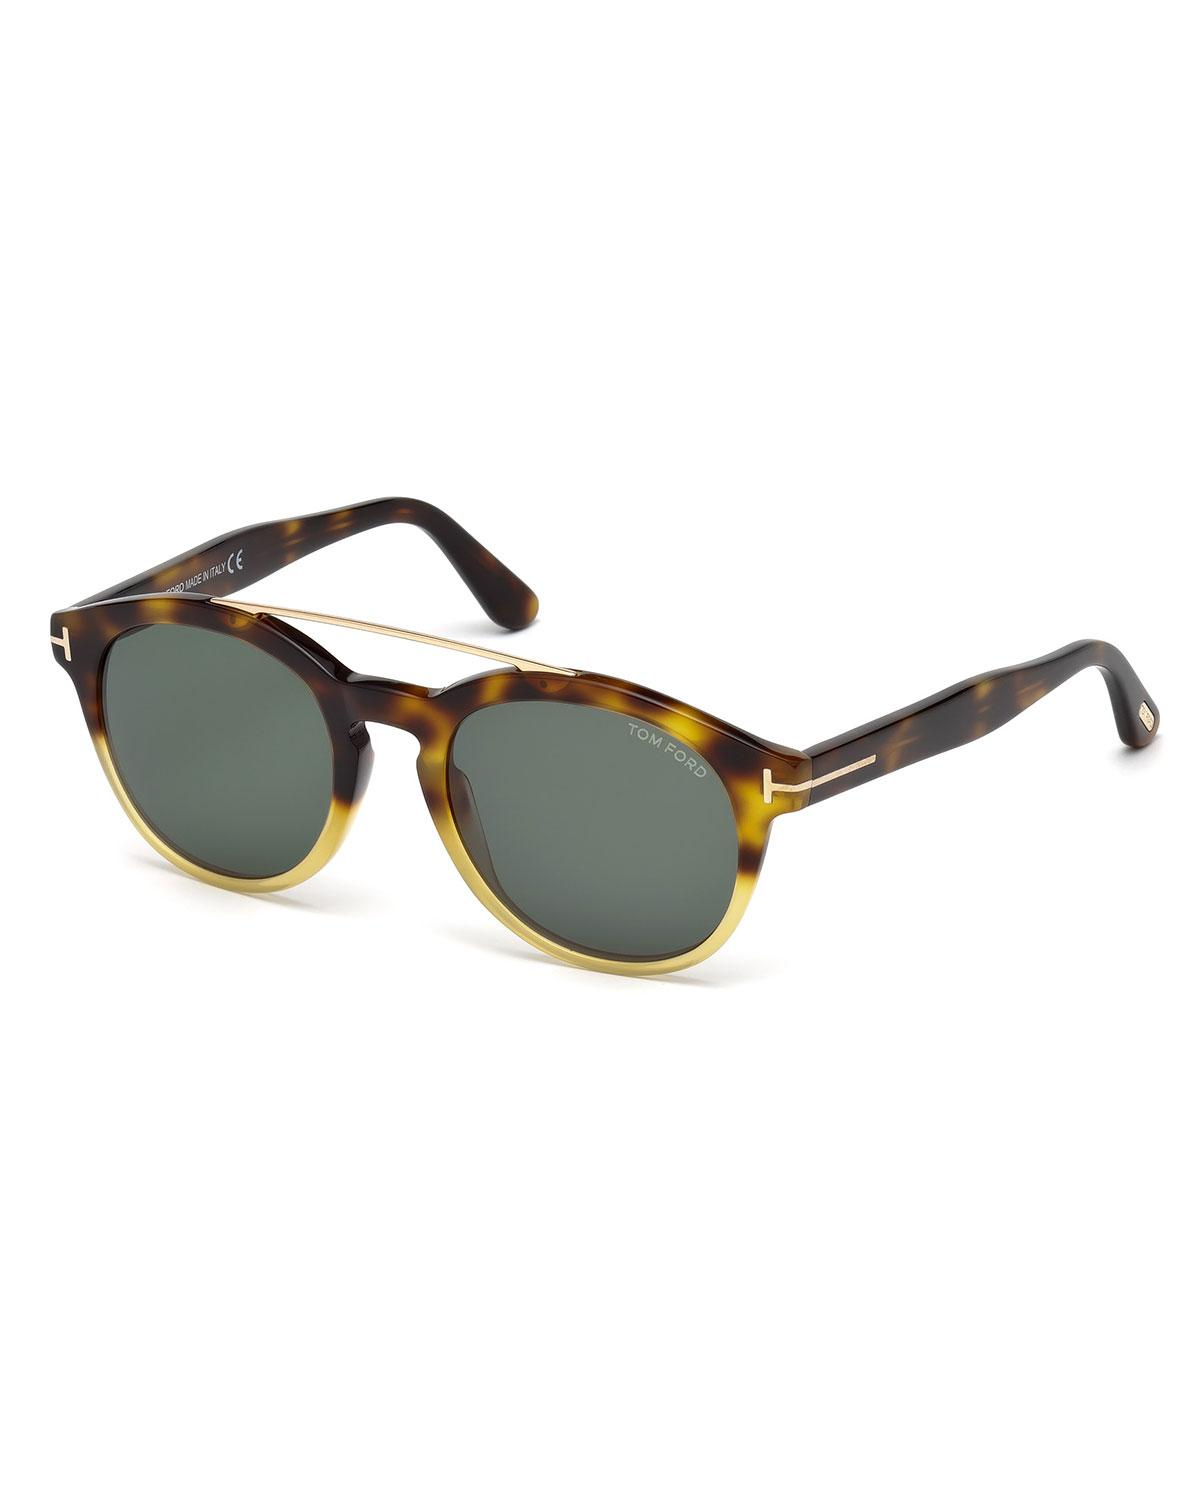 387bb6f700 Lyst - Tom Ford Newman 53mm Round Sunglasses for Men